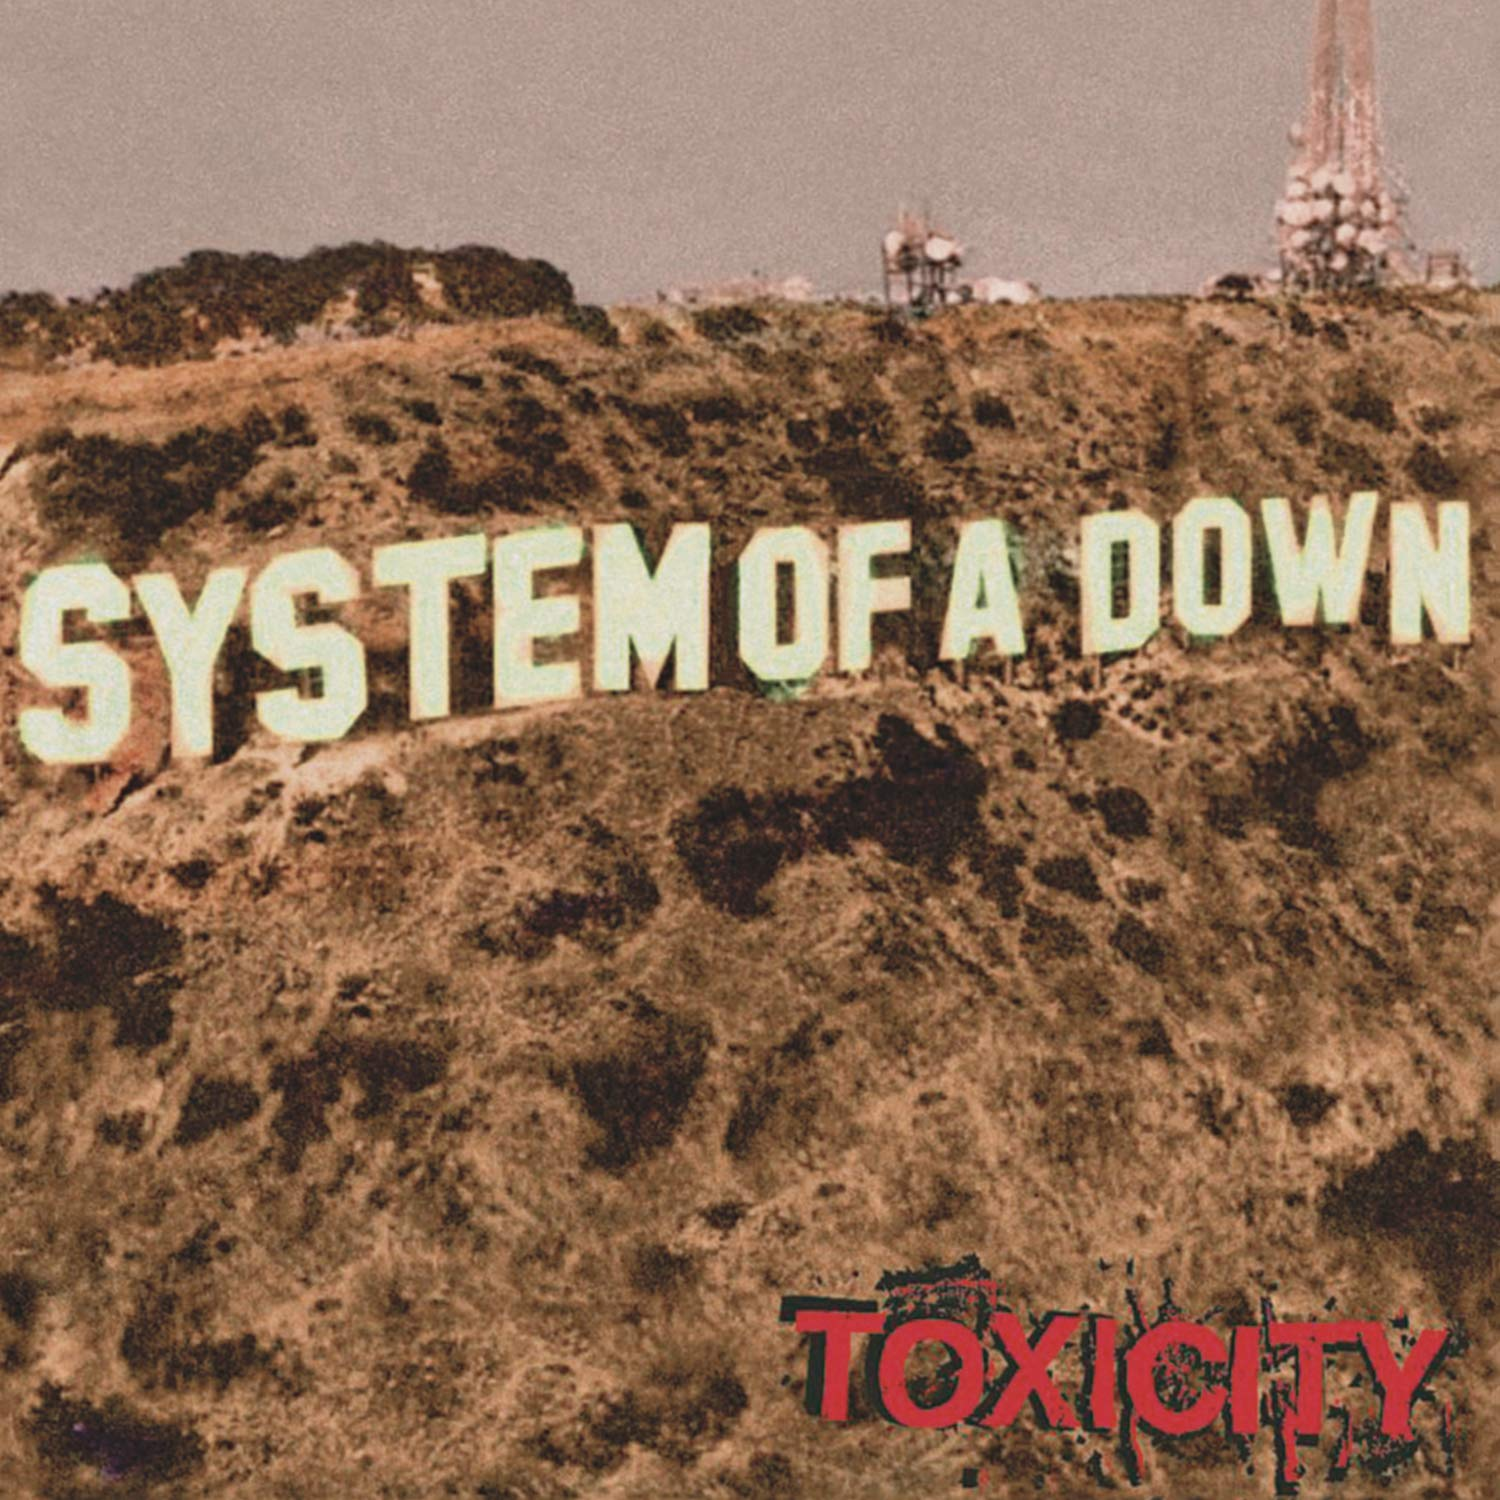 Toxicity: System Of A Down